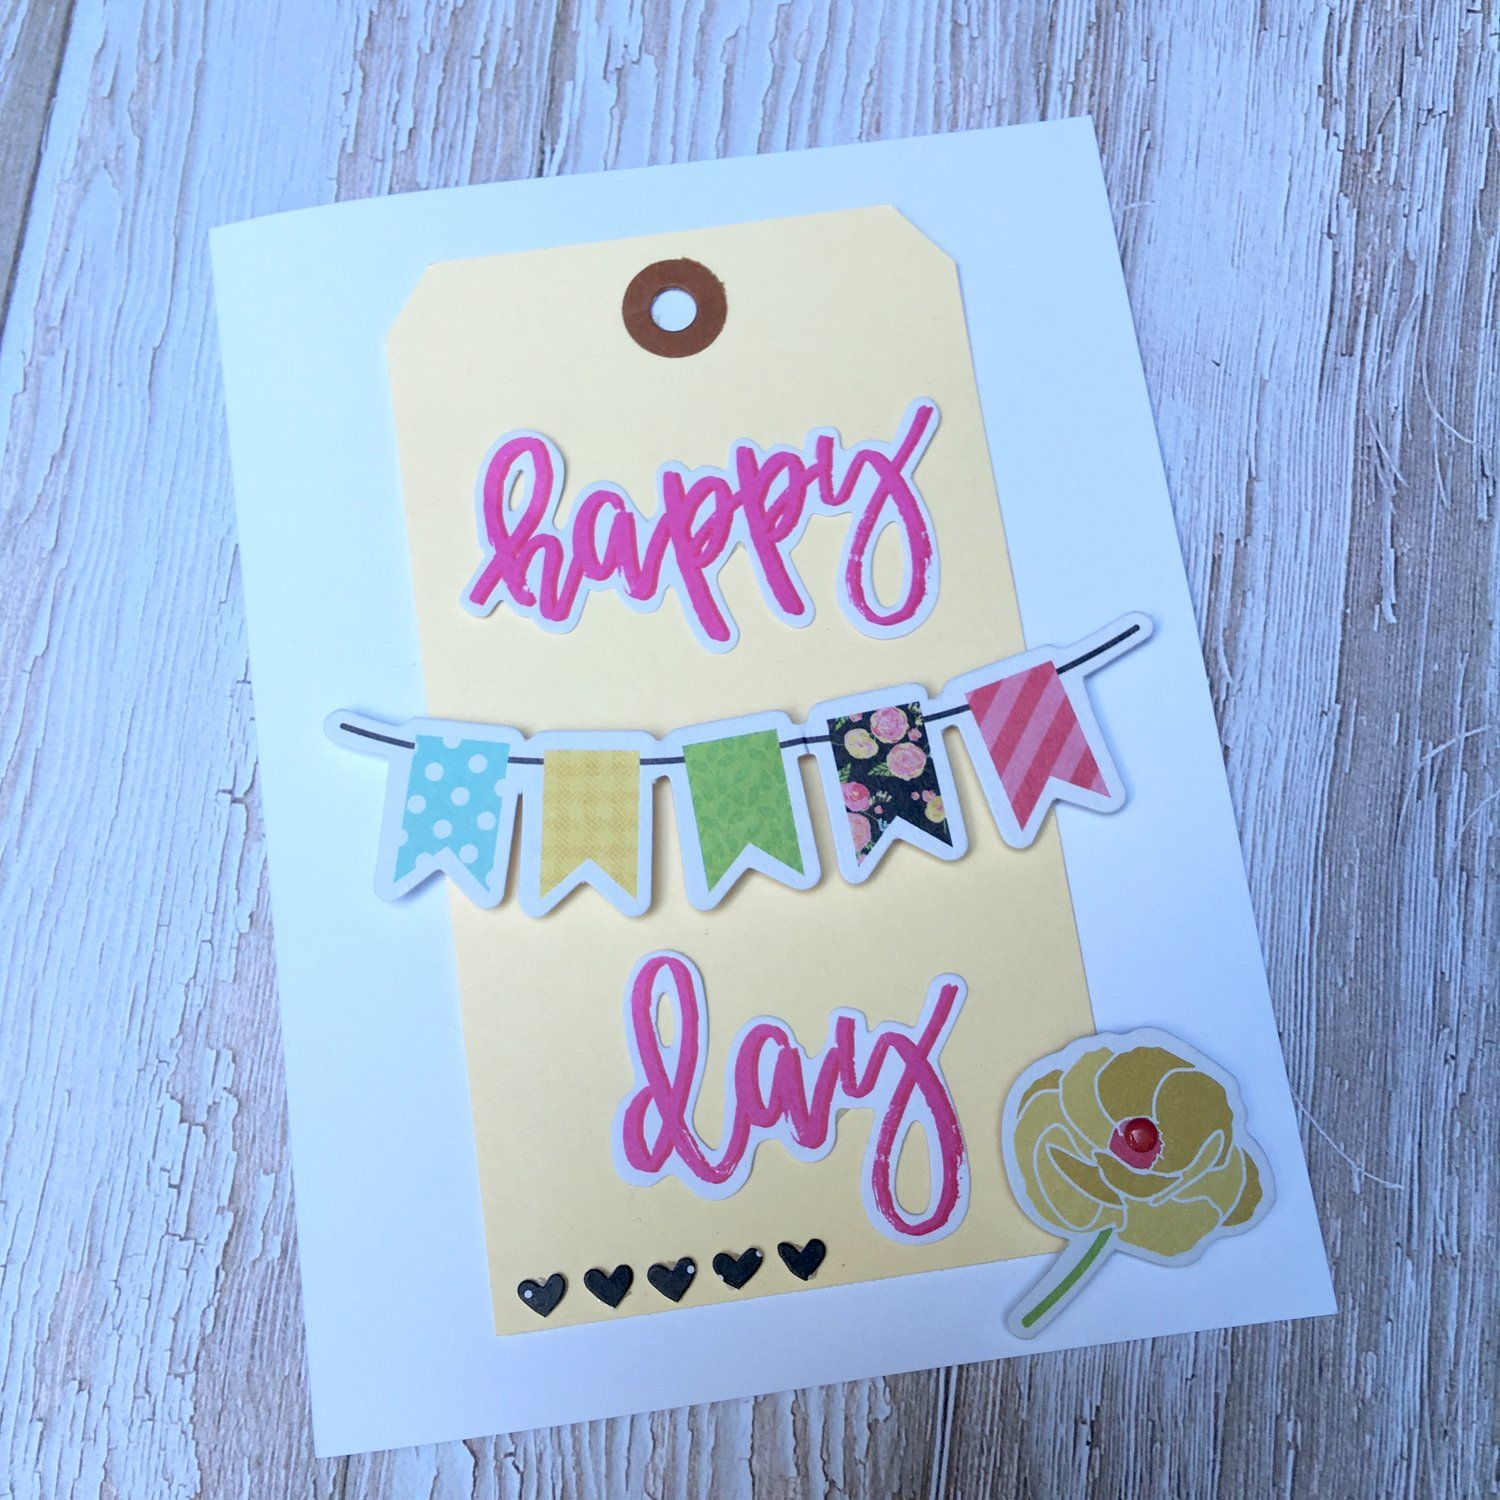 Happy Day, by Katherine Maynard using the Firefly collection from www.cocoadaisy.com #cocoadaisy #scrapbooking #kitclub #cards #diecuts #tags #banner